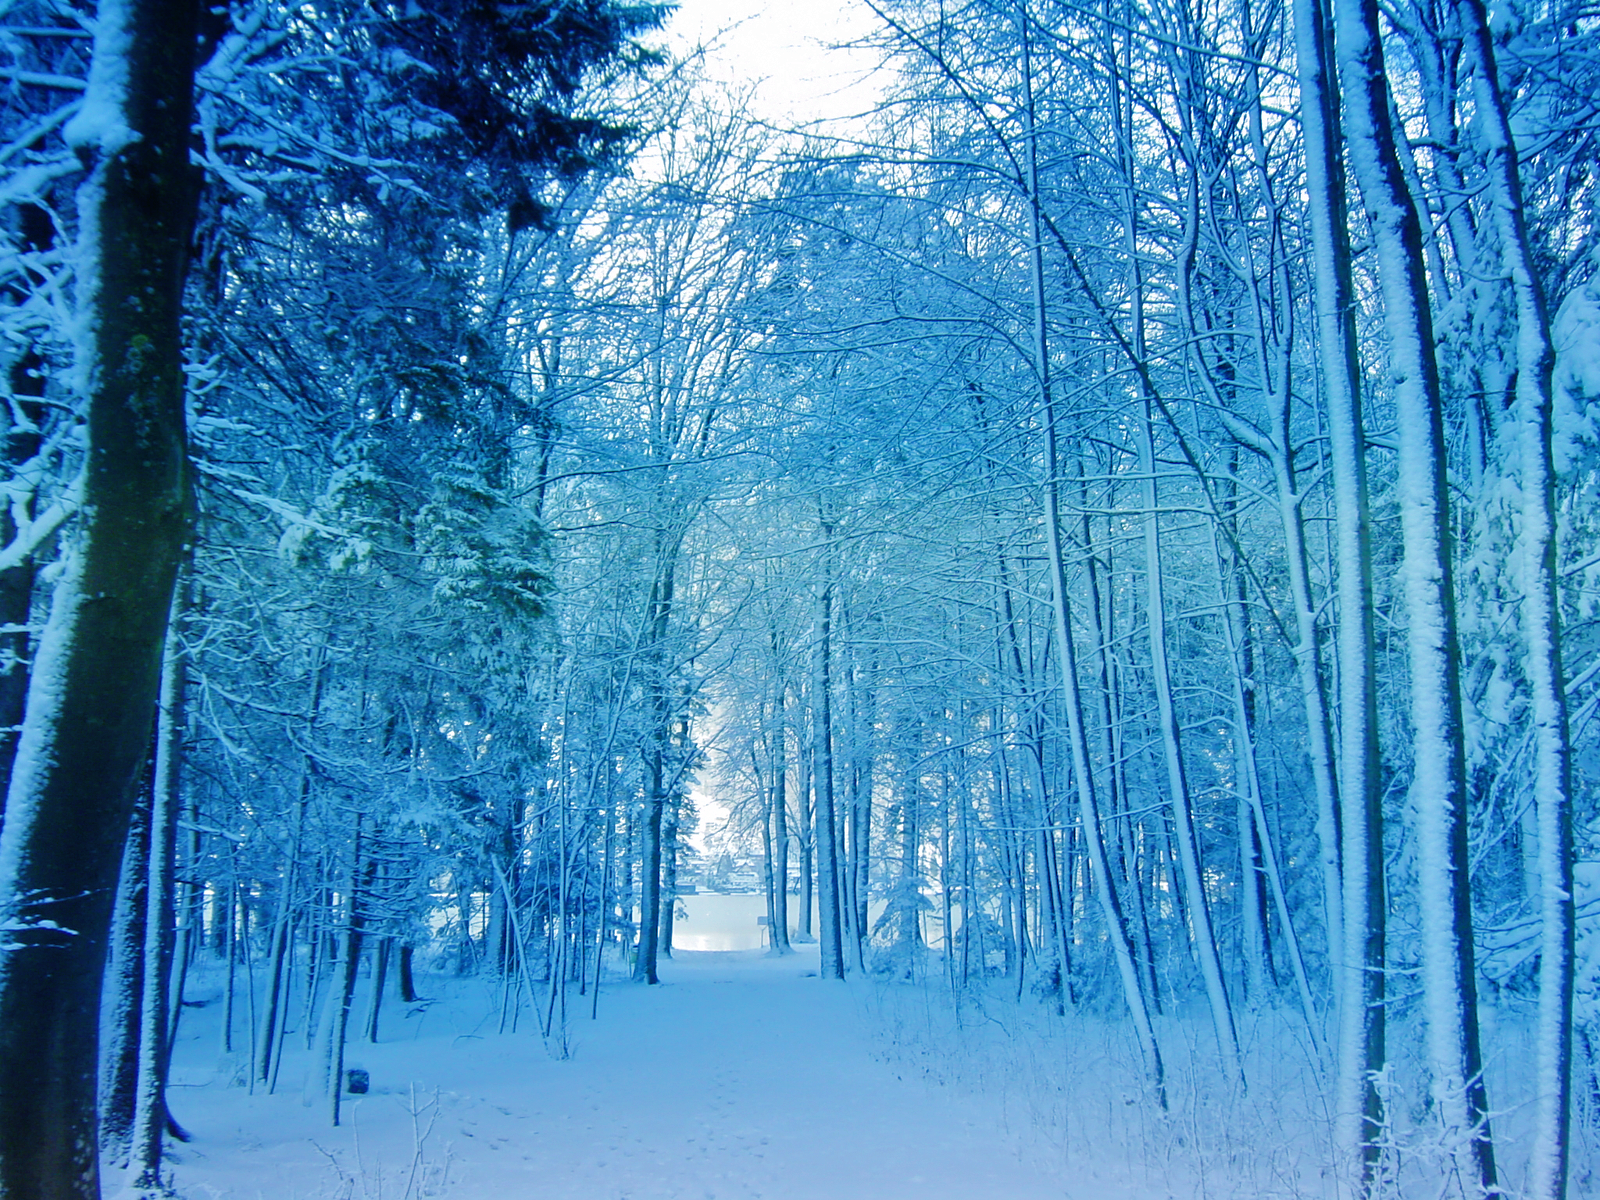 Democratic Forest Snow Wallpaper Conservatives Still Did Not Build It Or Invent It On Their